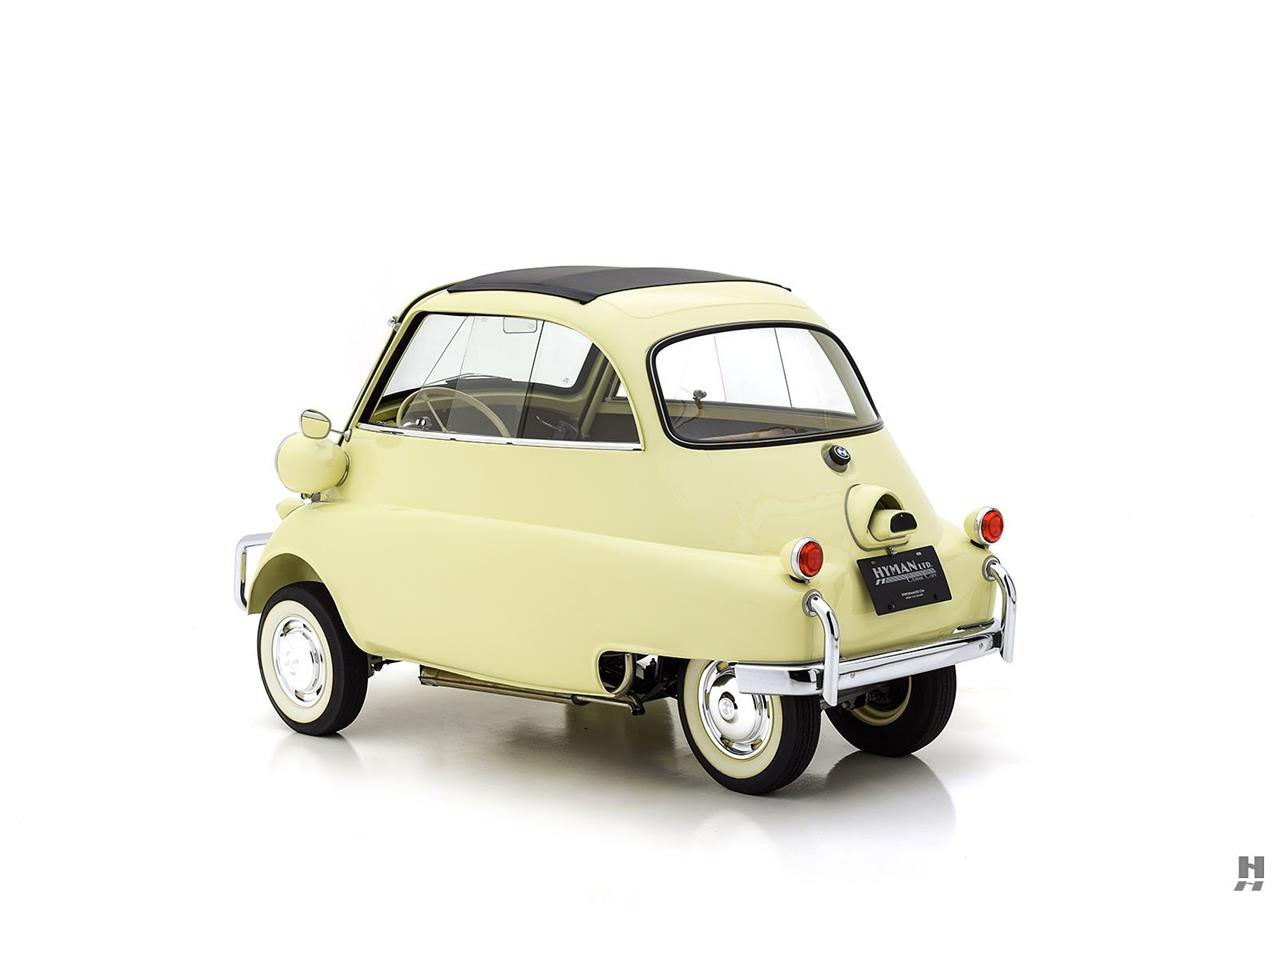 Large Picture of Classic '58 BMW Isetta Offered by Hyman Ltd. Classic Cars - QAXT